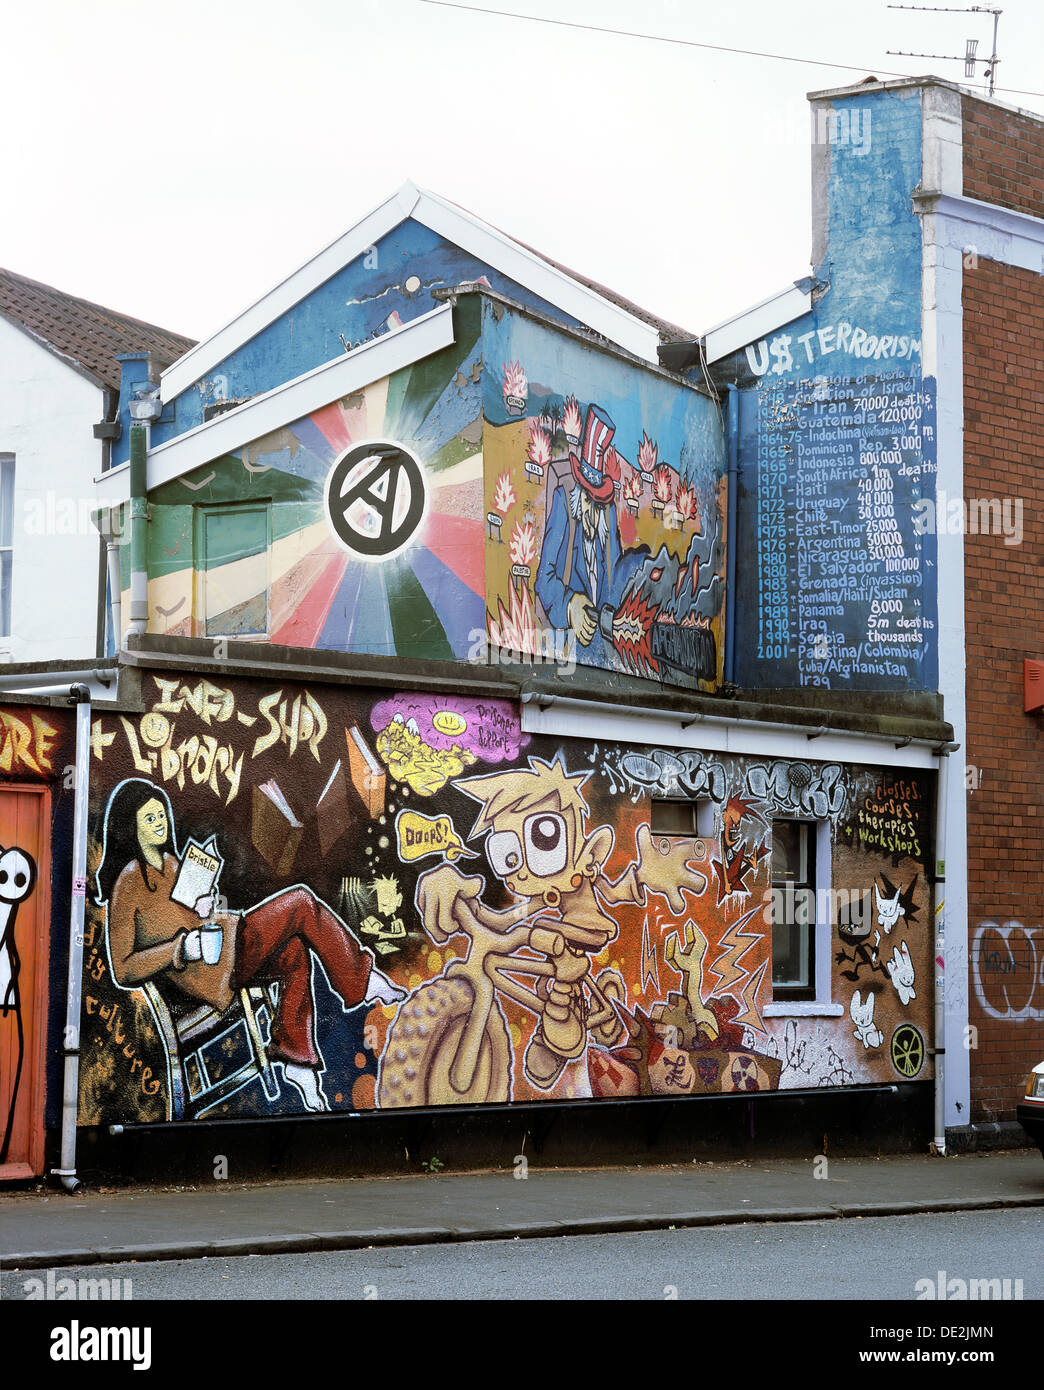 Mural depicting anti-capitalist and anarchist themes on the Kebele Kommunity Projekt building rear wall, Robertson Road, Bristol - Stock Image